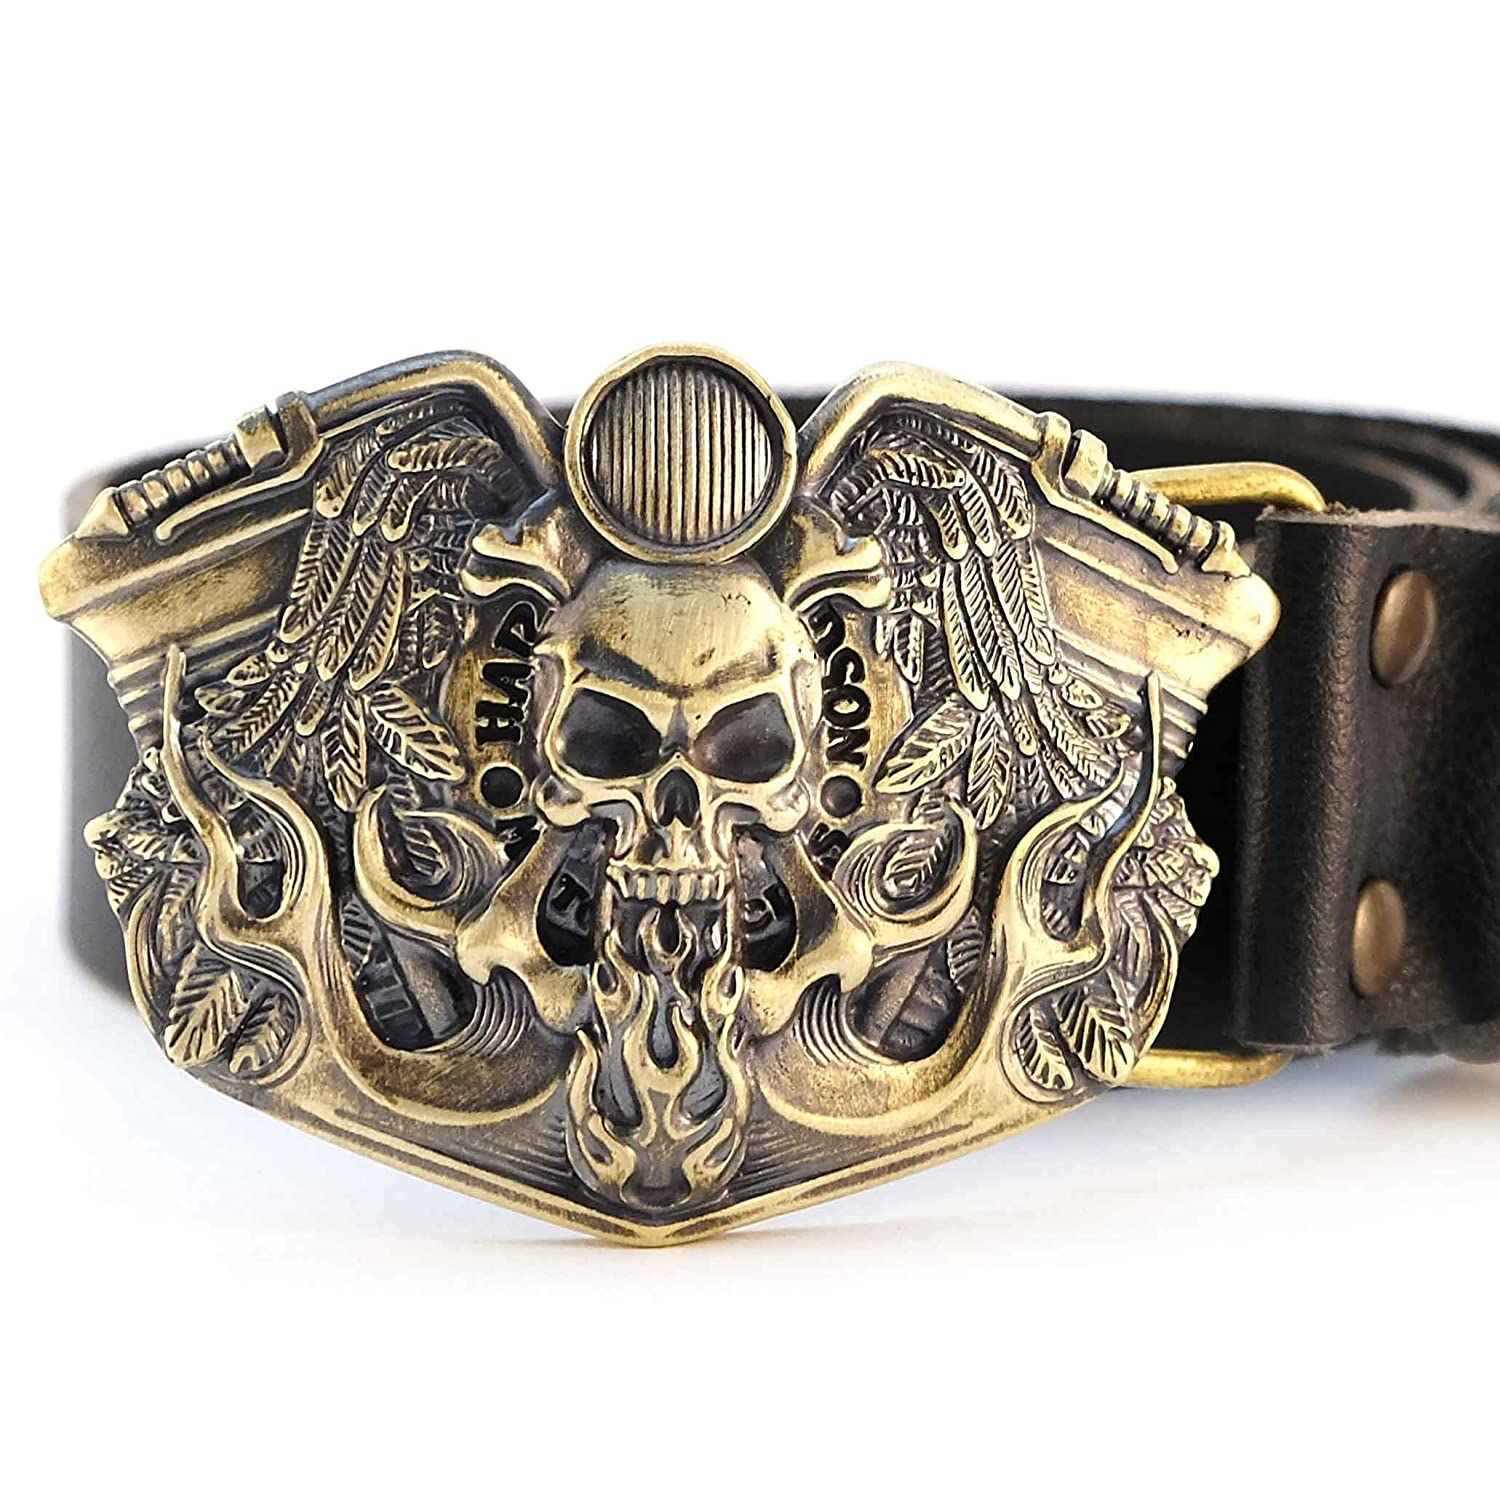 Handmade biker solid brass belt buckle with motorcycle and skull Leather belt with brass buckle Route 66